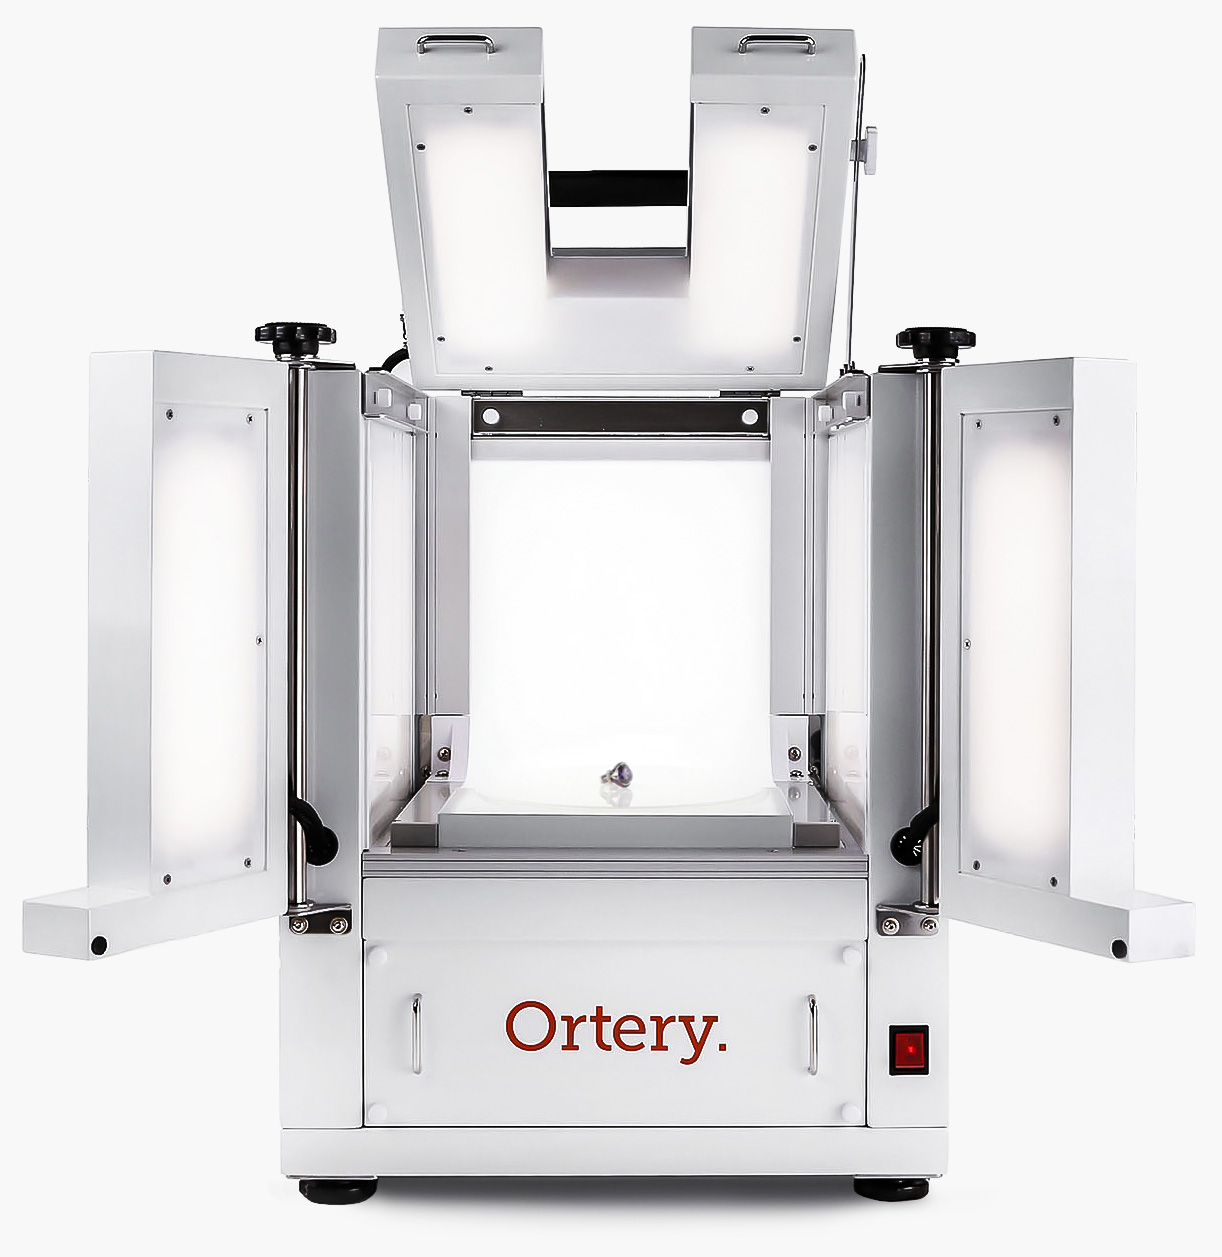 Ortery Photobench 80 is a 360 jewelry photography solution with software controlled LED lighting and turntable for taking jewelry product photos on a pure-white or transparent background.